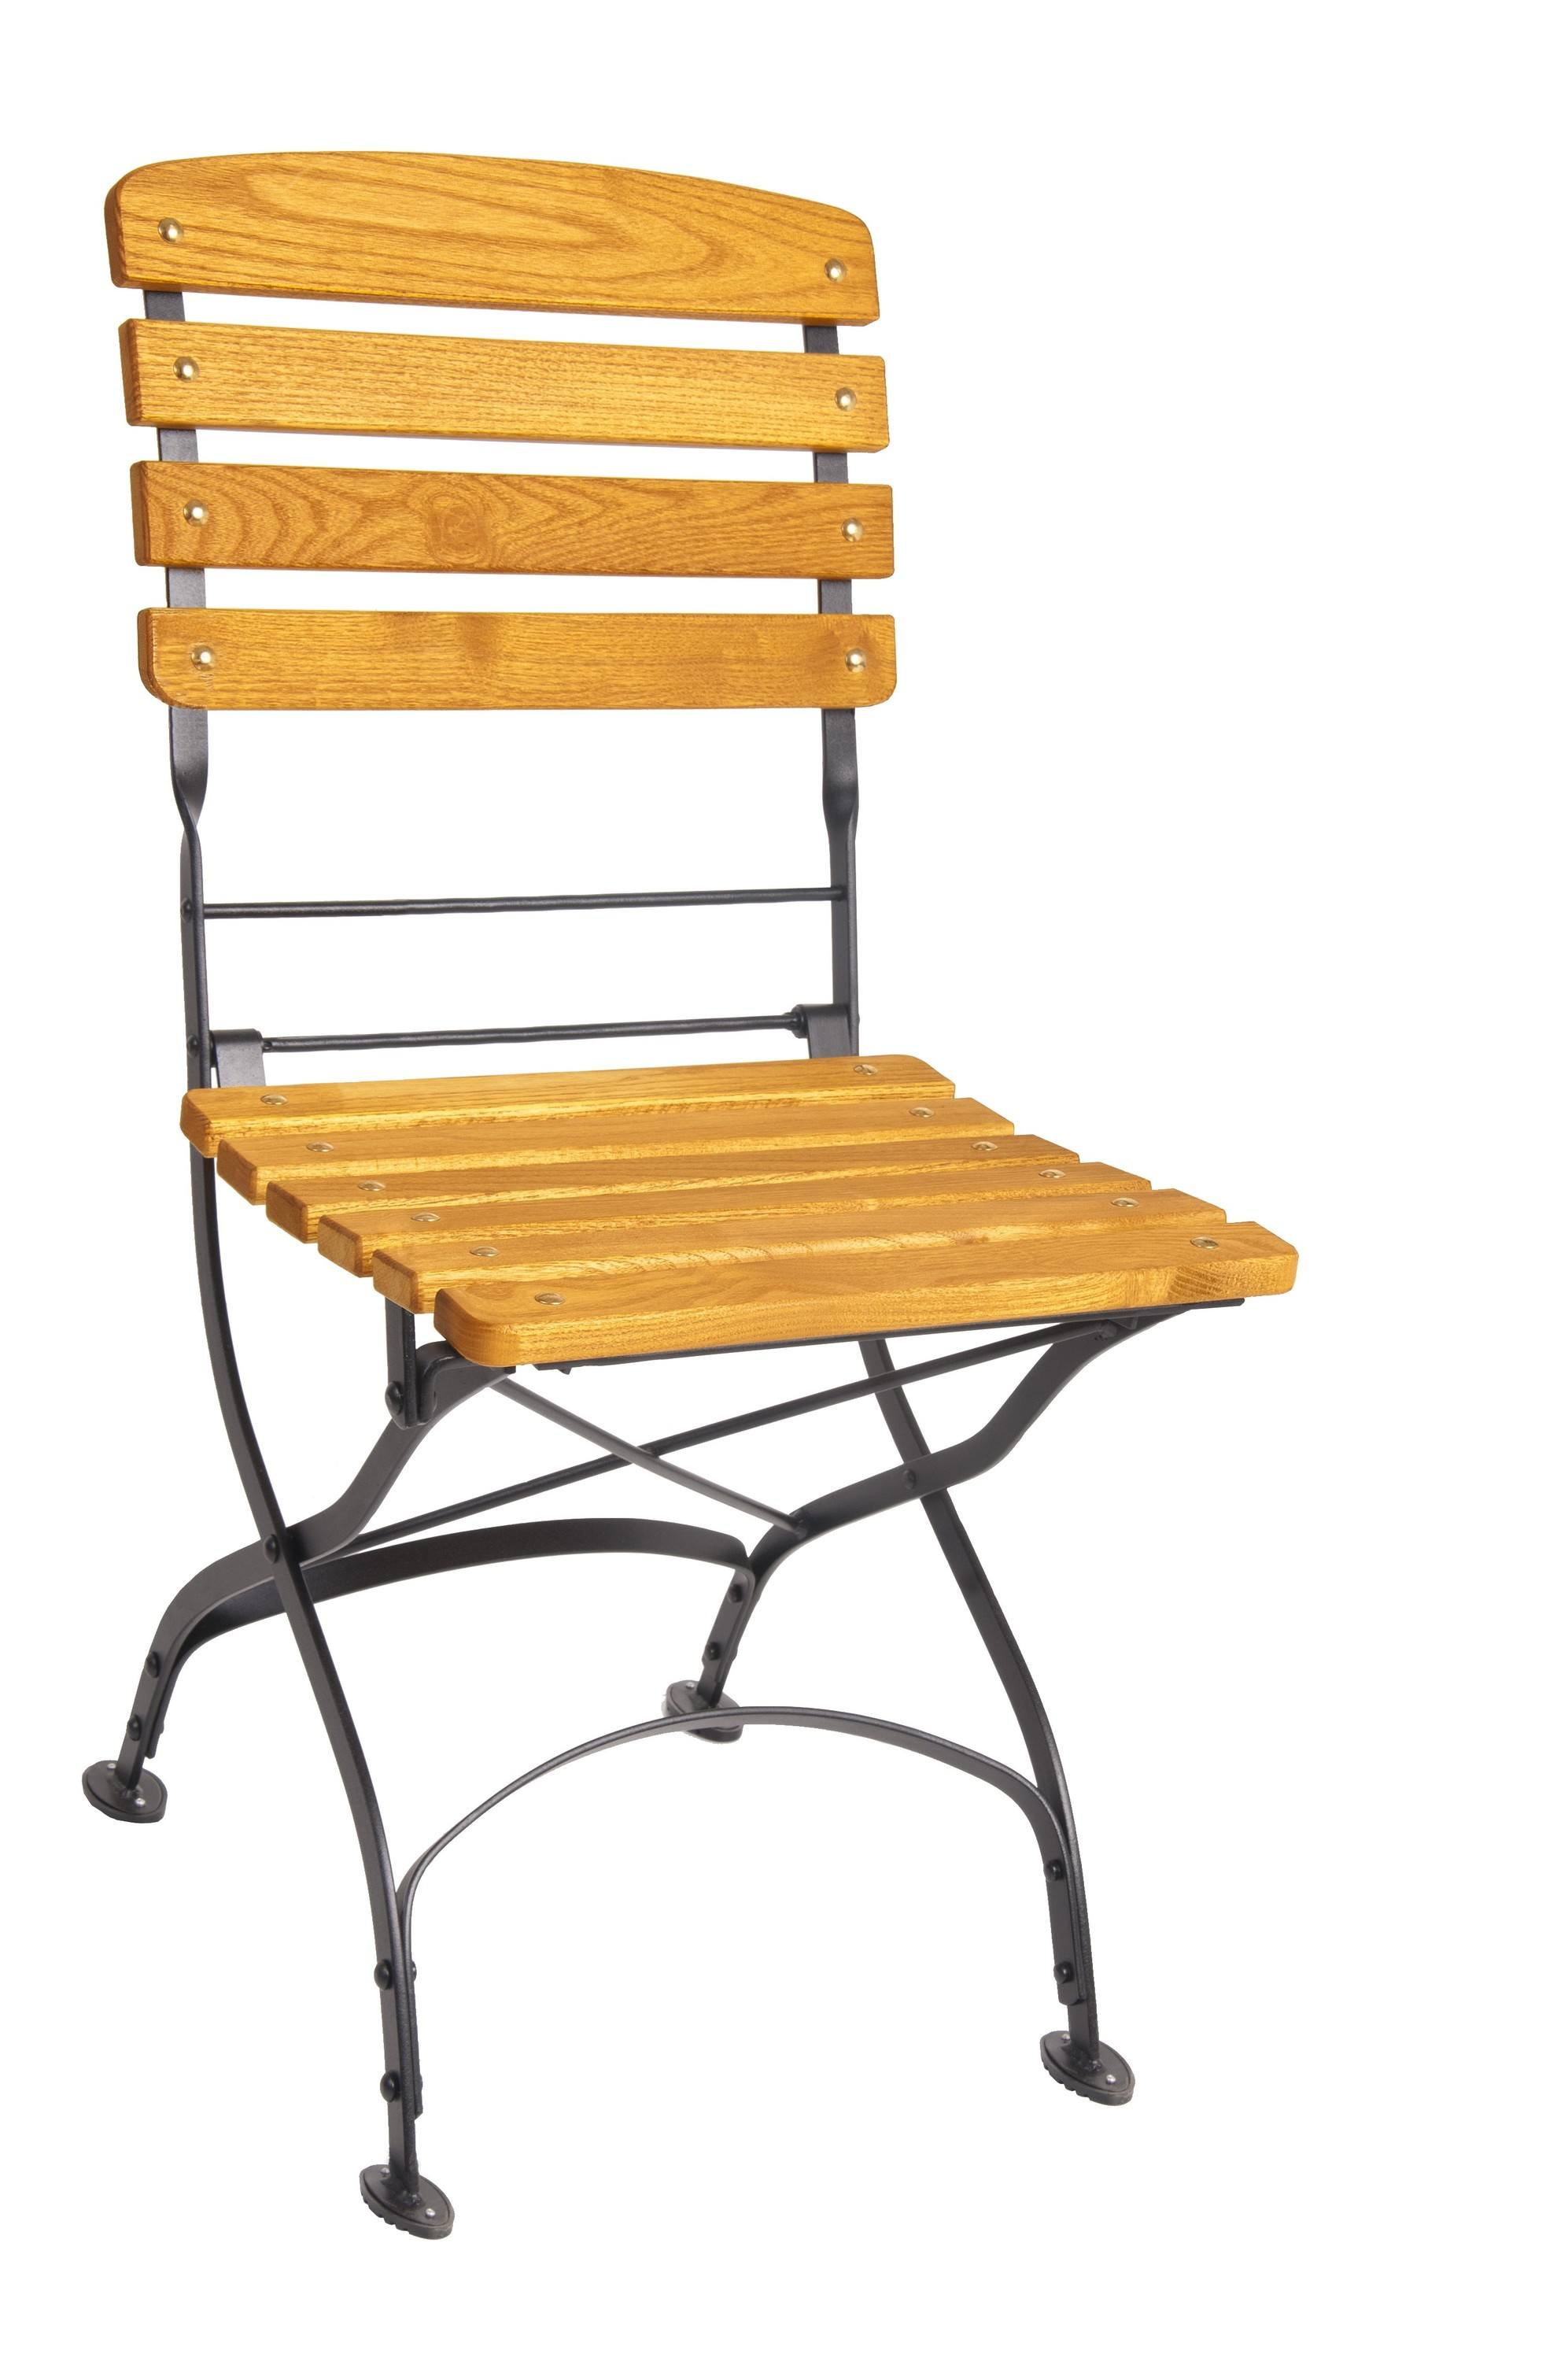 <p>Outdoor Furniture – Metal & Wooden Dining Collection – Classico Chair.</p> <p> </p> <p>Classico Furniture chair with light coloured slatted hardwood seat armrests and backrest with black frame.</p> <p> </p> <p>Ideally suited for either indoor or outdoor relaxed dining location or more intimate café bistro al fresco area or for events requiring easy to fold and store furniture.</p>